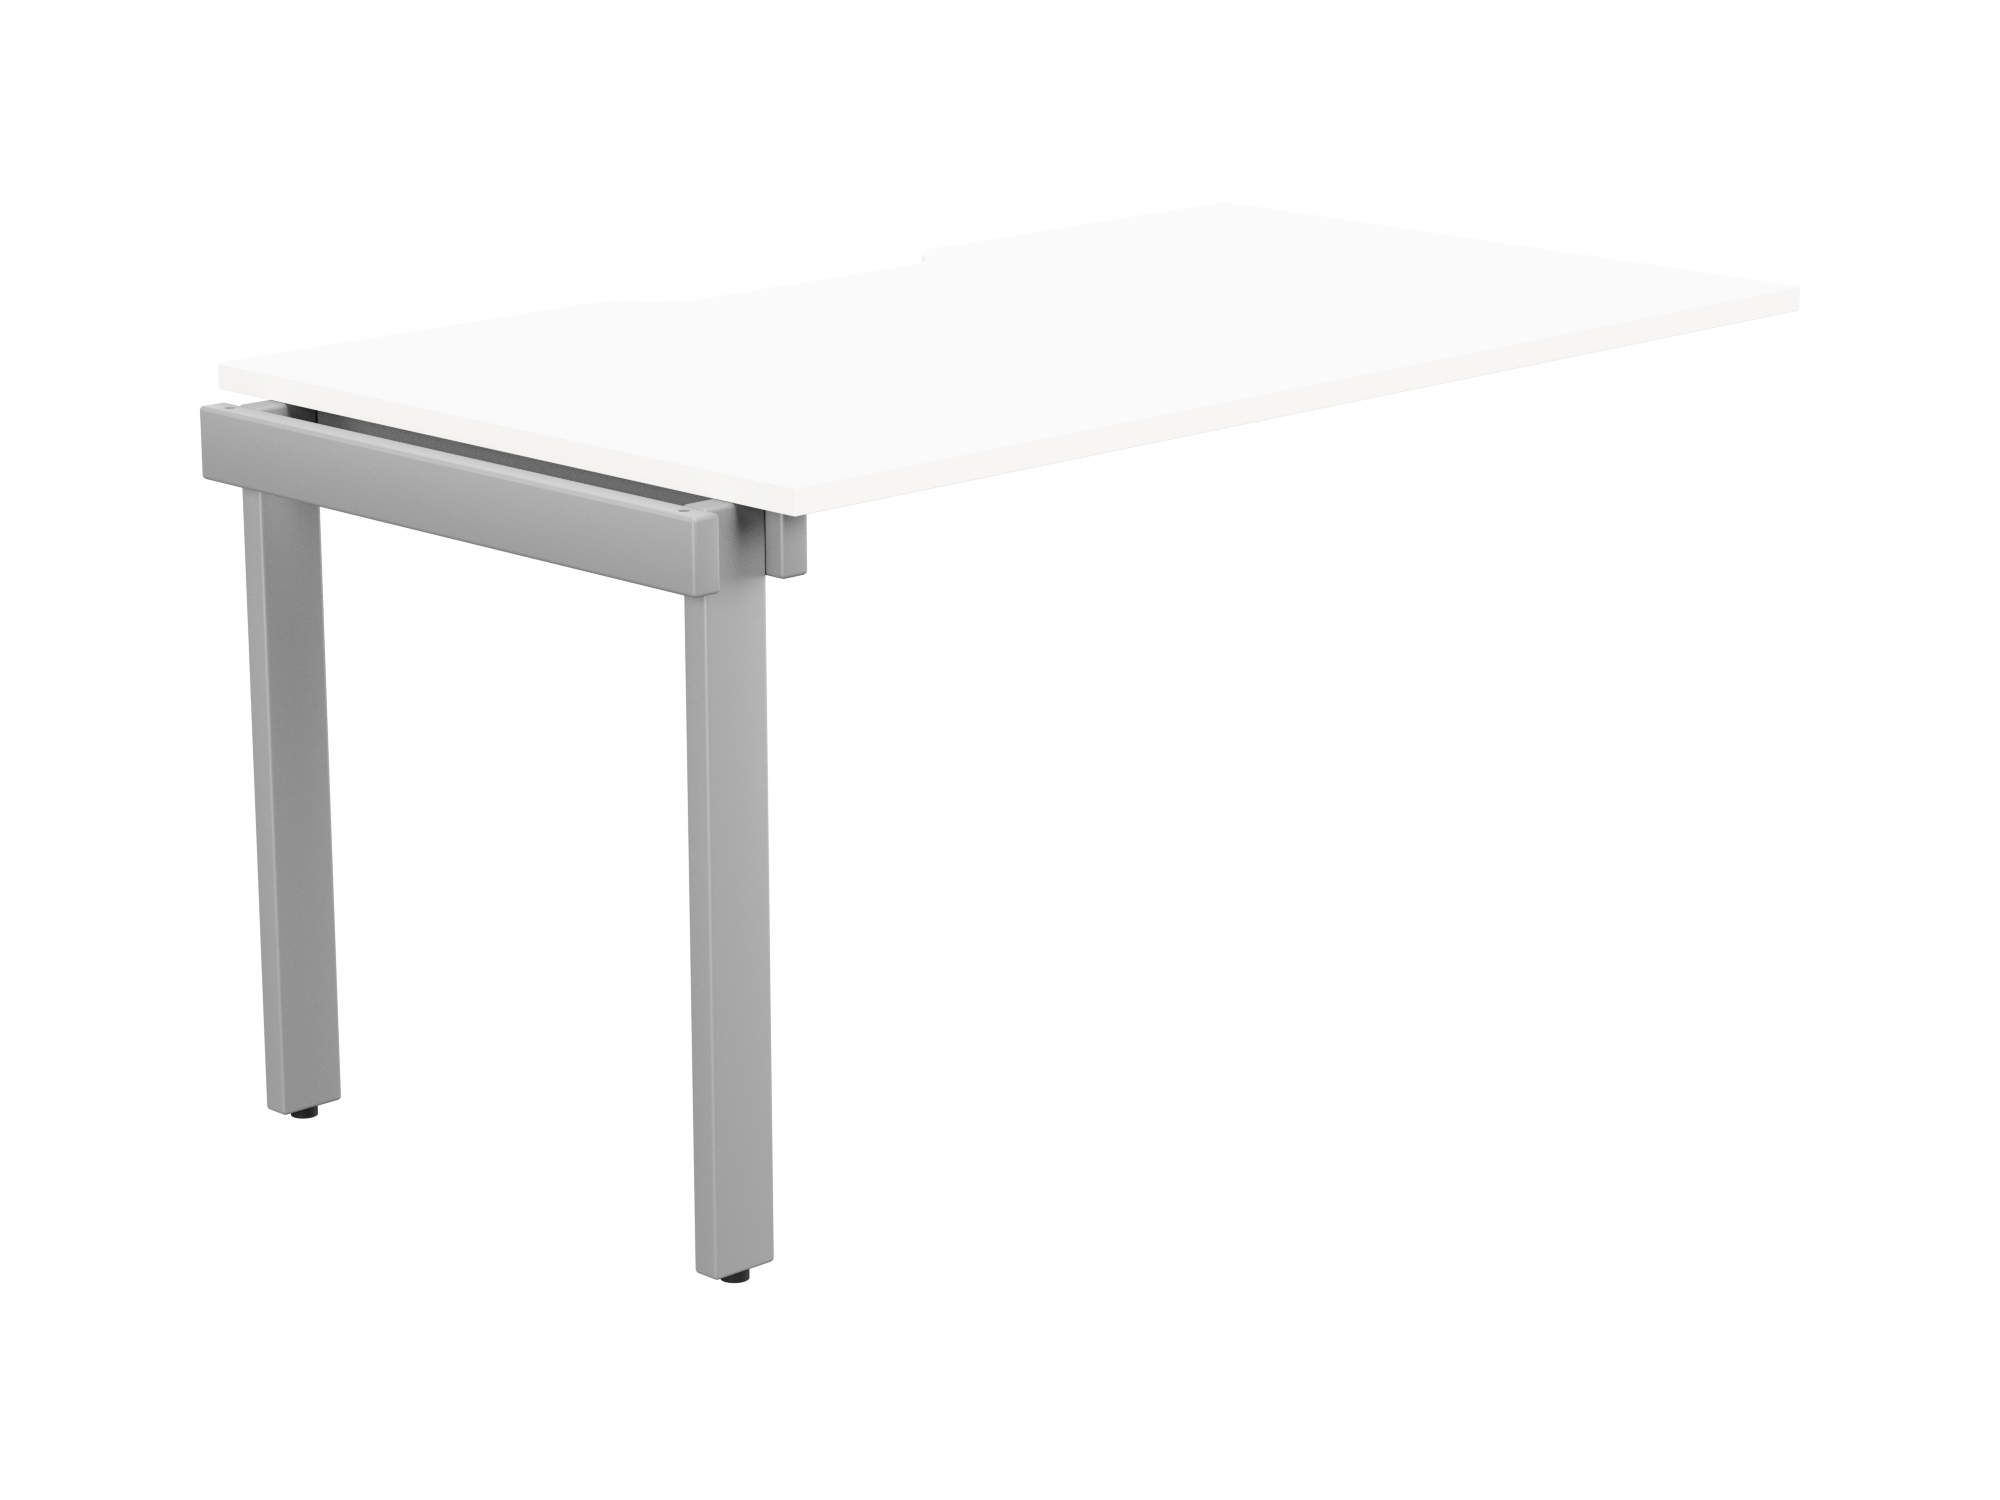 Switch 1 Person Bench Add-On Scallop Top 1400 x 800 - Silver Frame / White Top